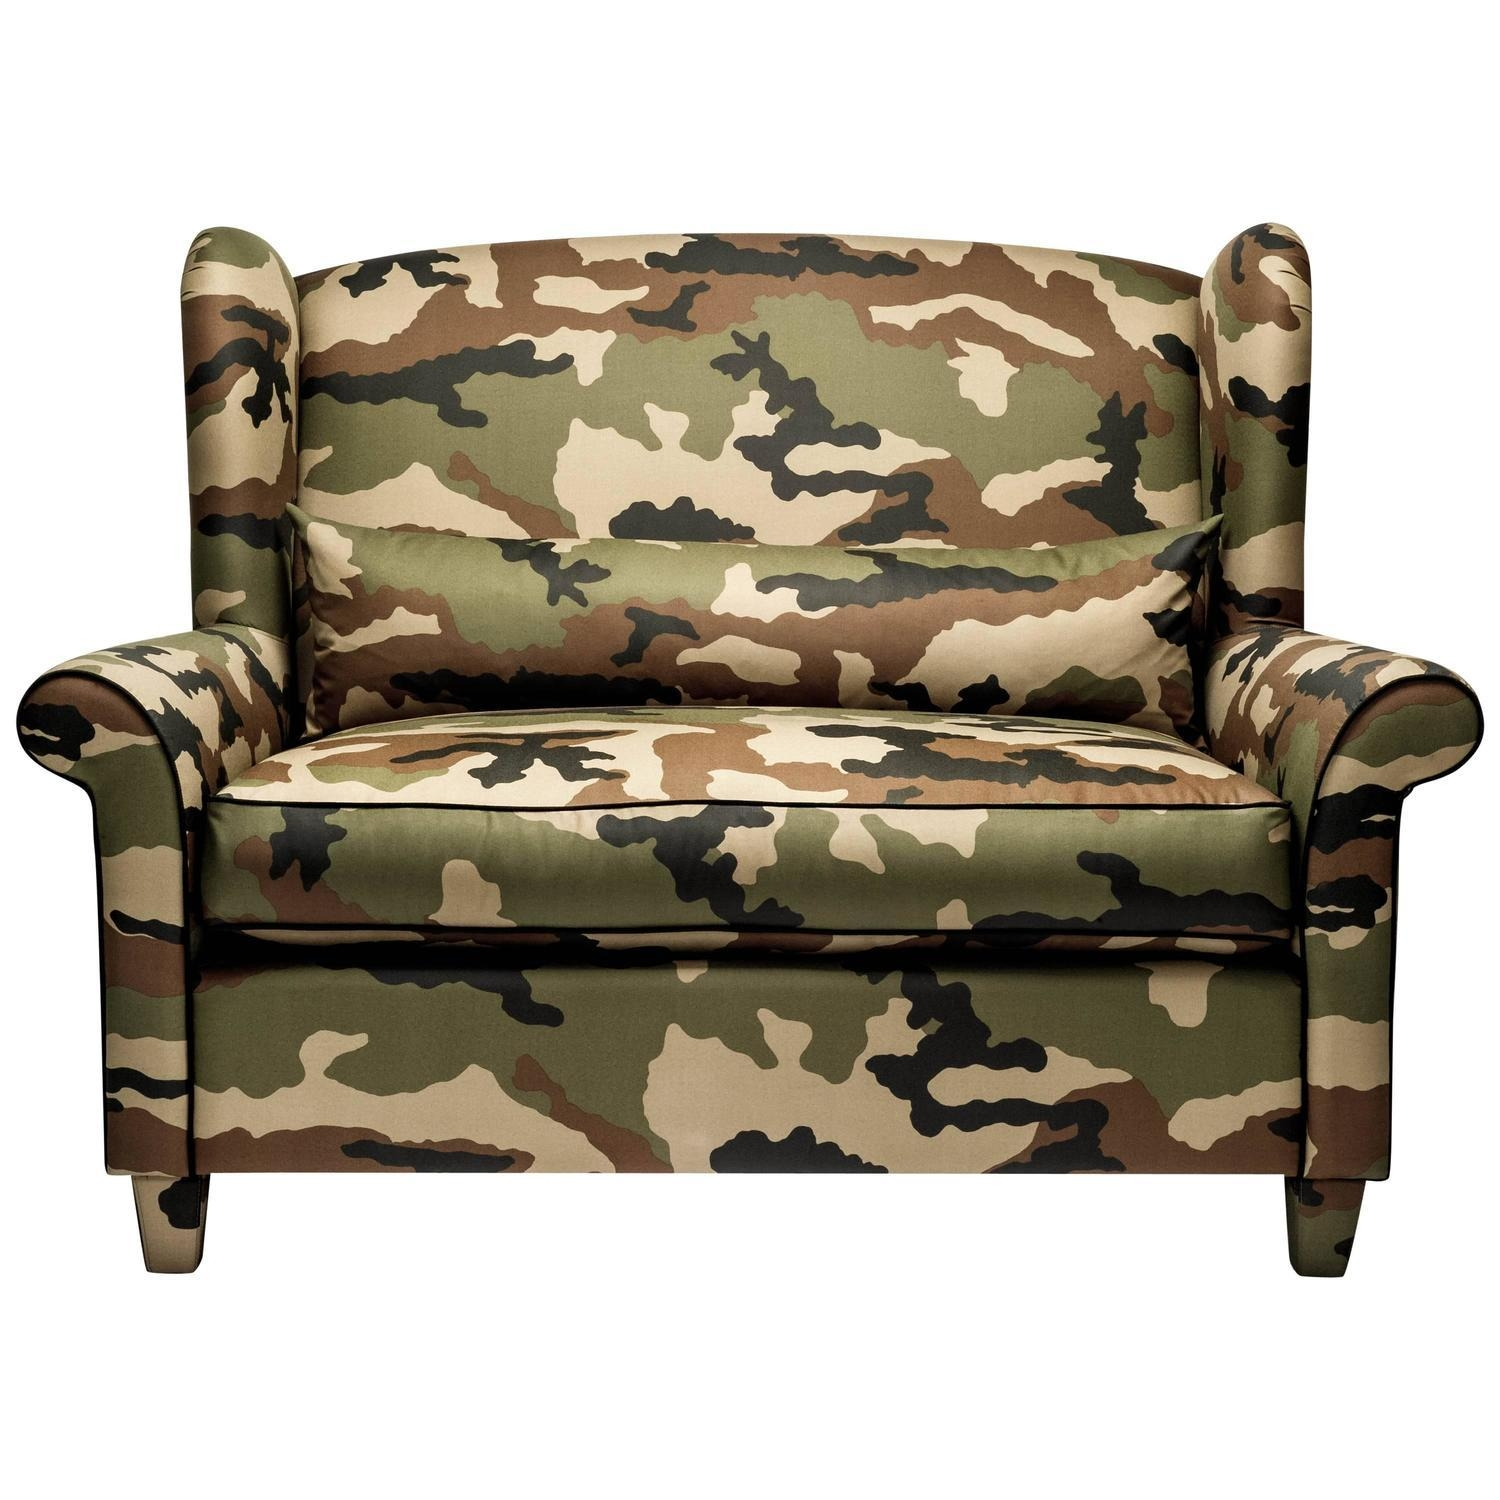 Furniture: Unique Pattern Sofa Decor Ideas With Camouflage Pertaining To Camo Reclining Sofas (View 14 of 20)